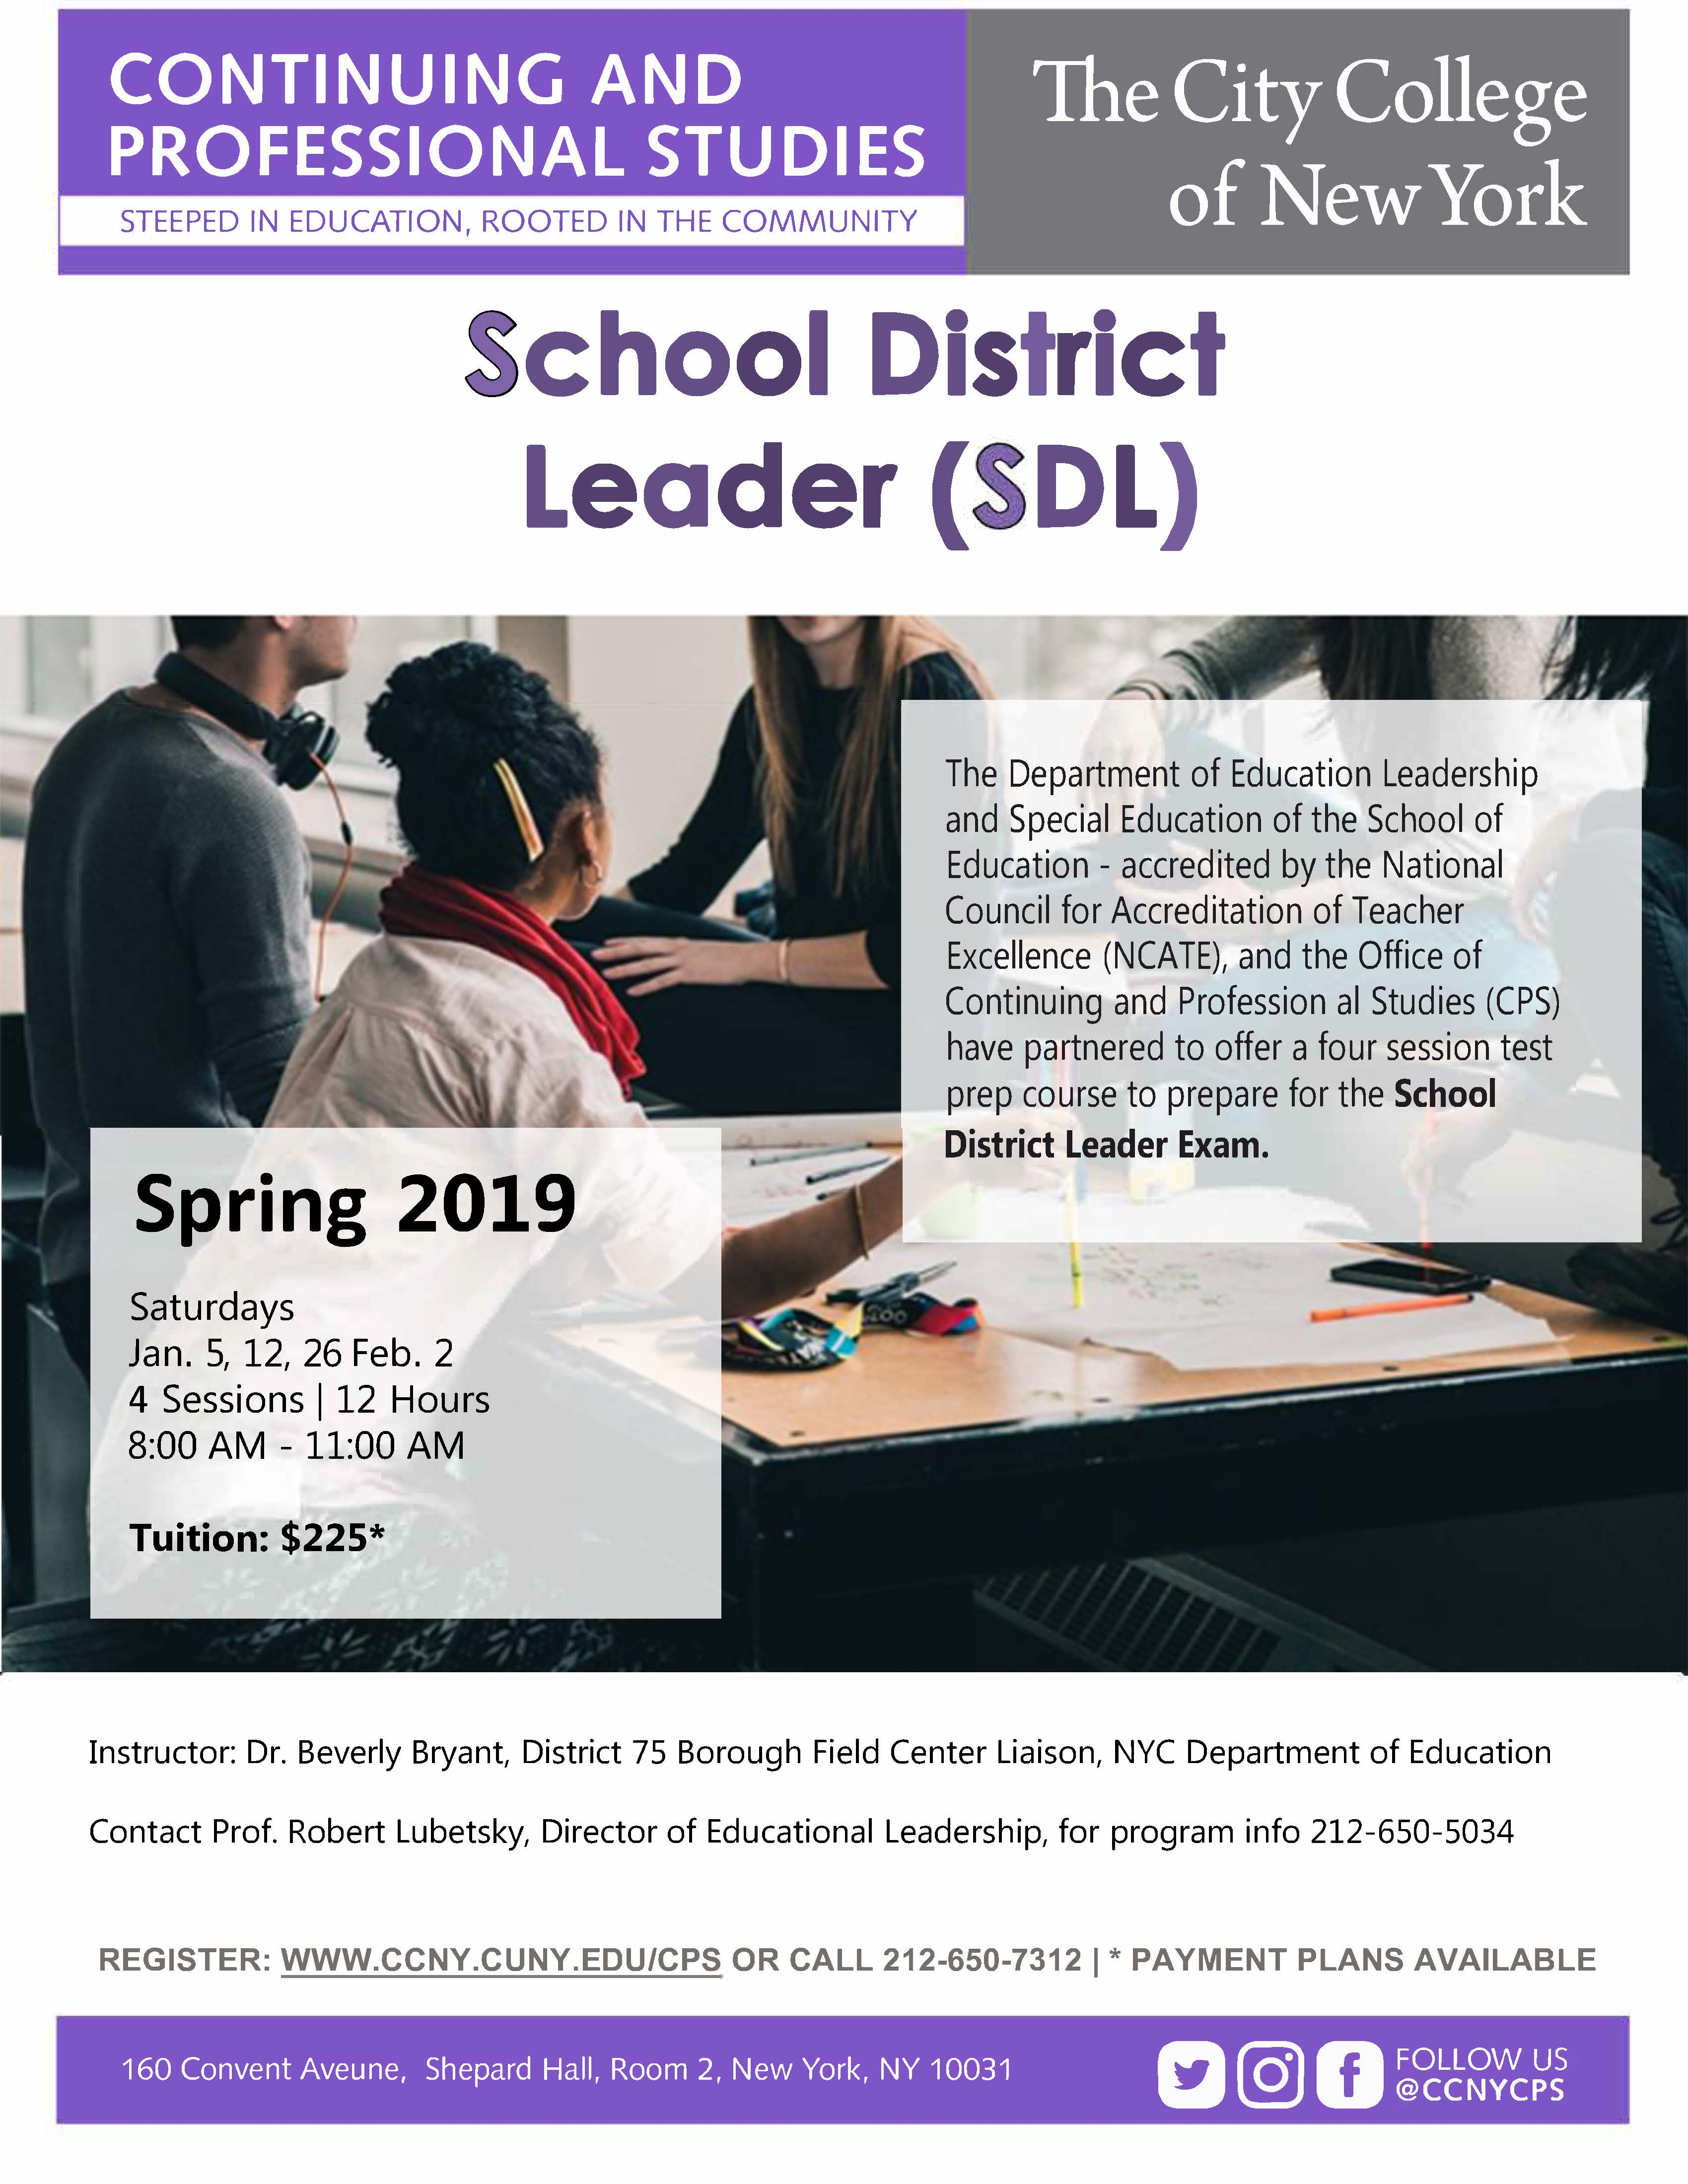 School District Leader Certification